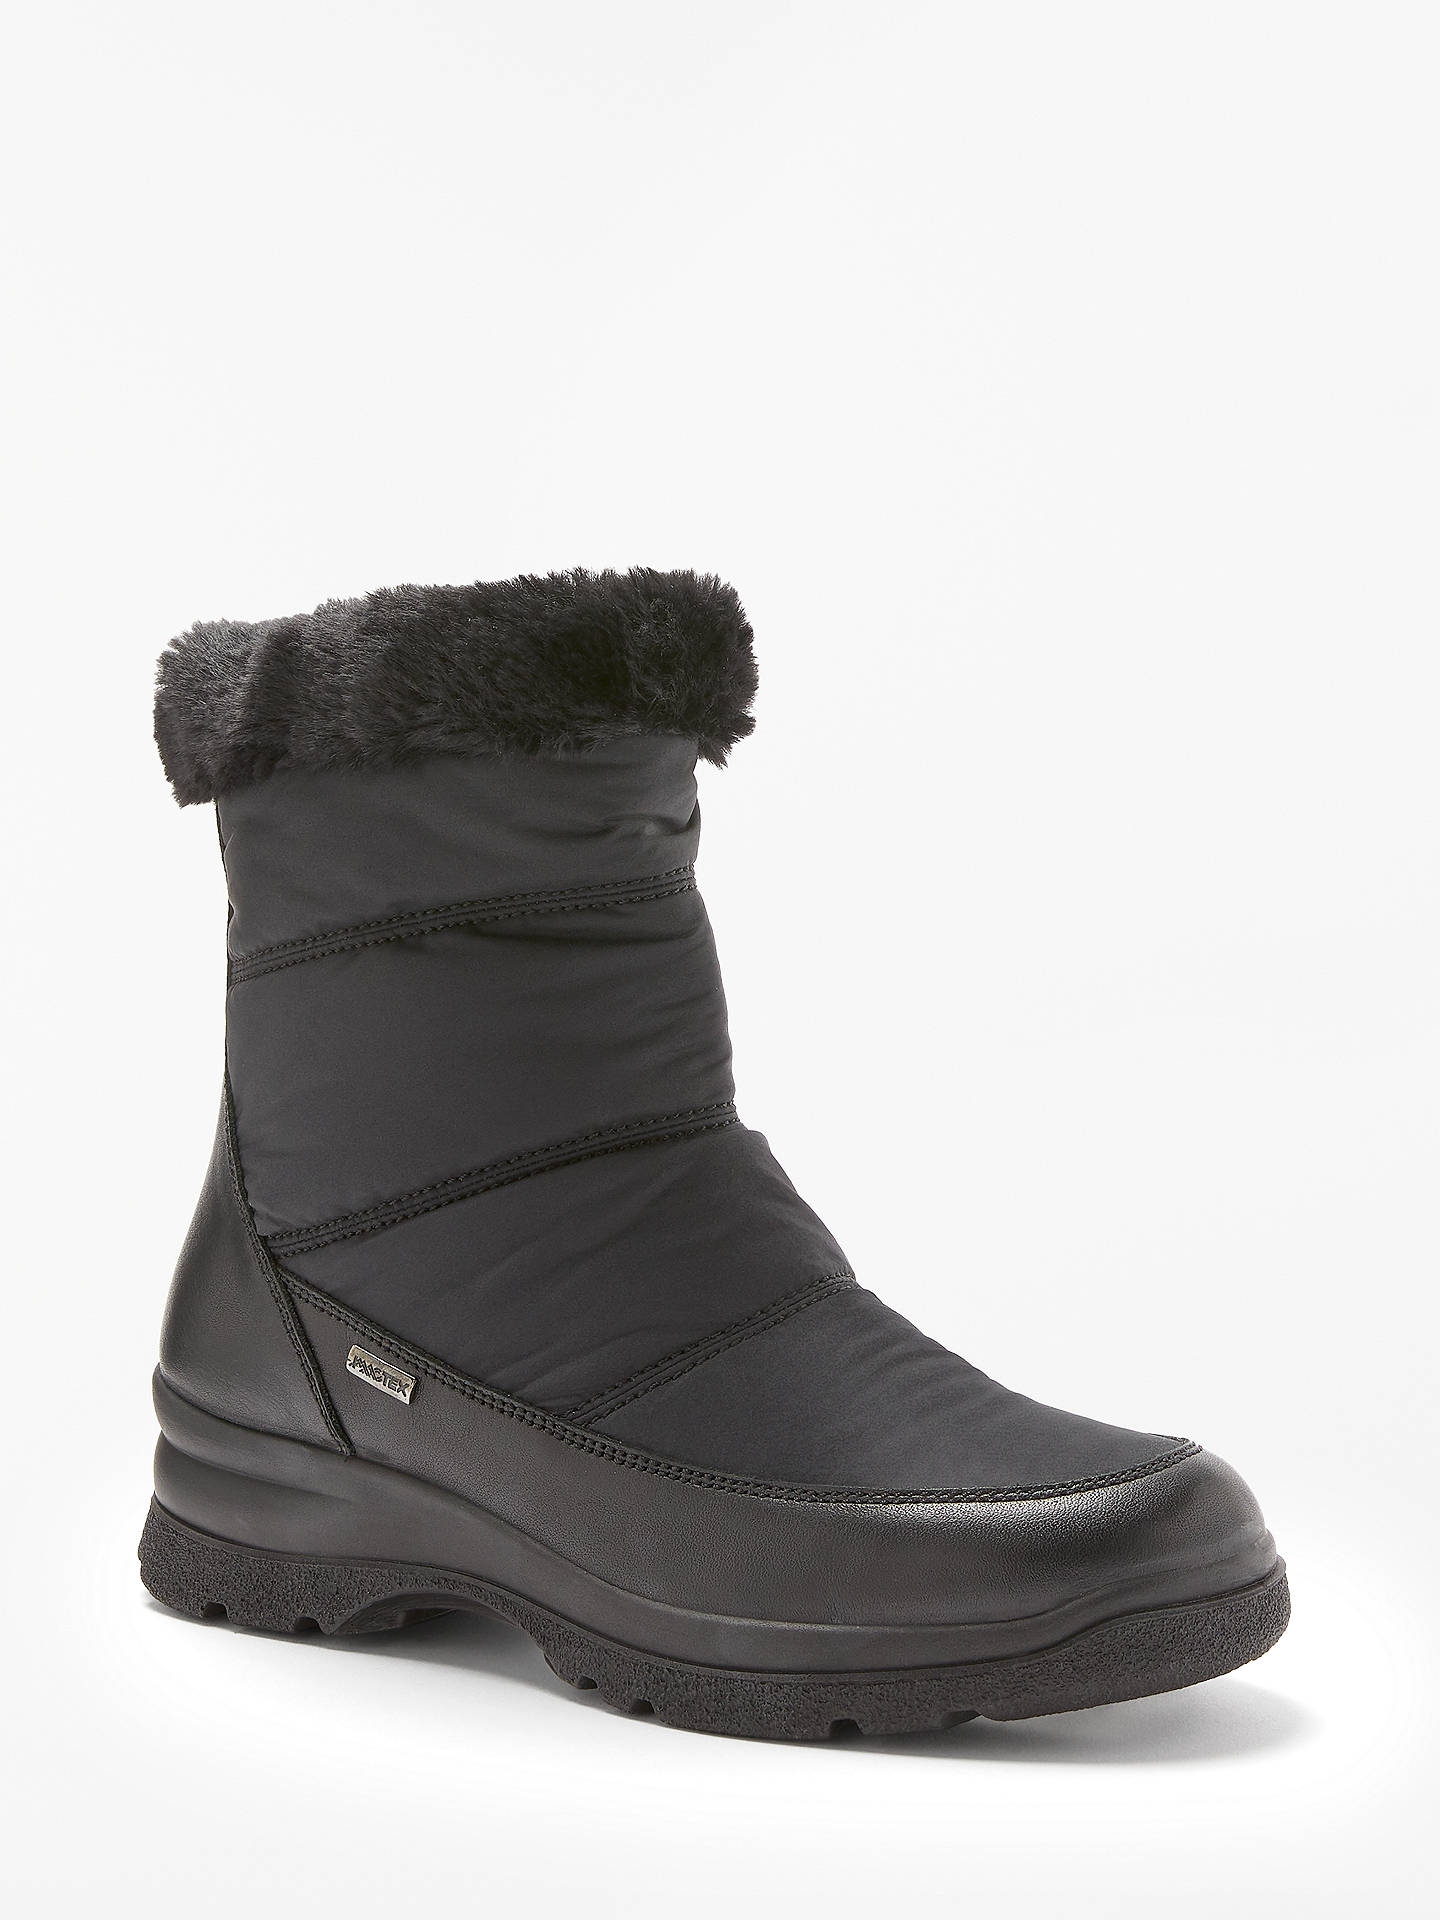 Buy John Lewis & Partners Designed for Comfort Patrice Waterproof Ankle Boots, Black, 4 Online at johnlewis.com